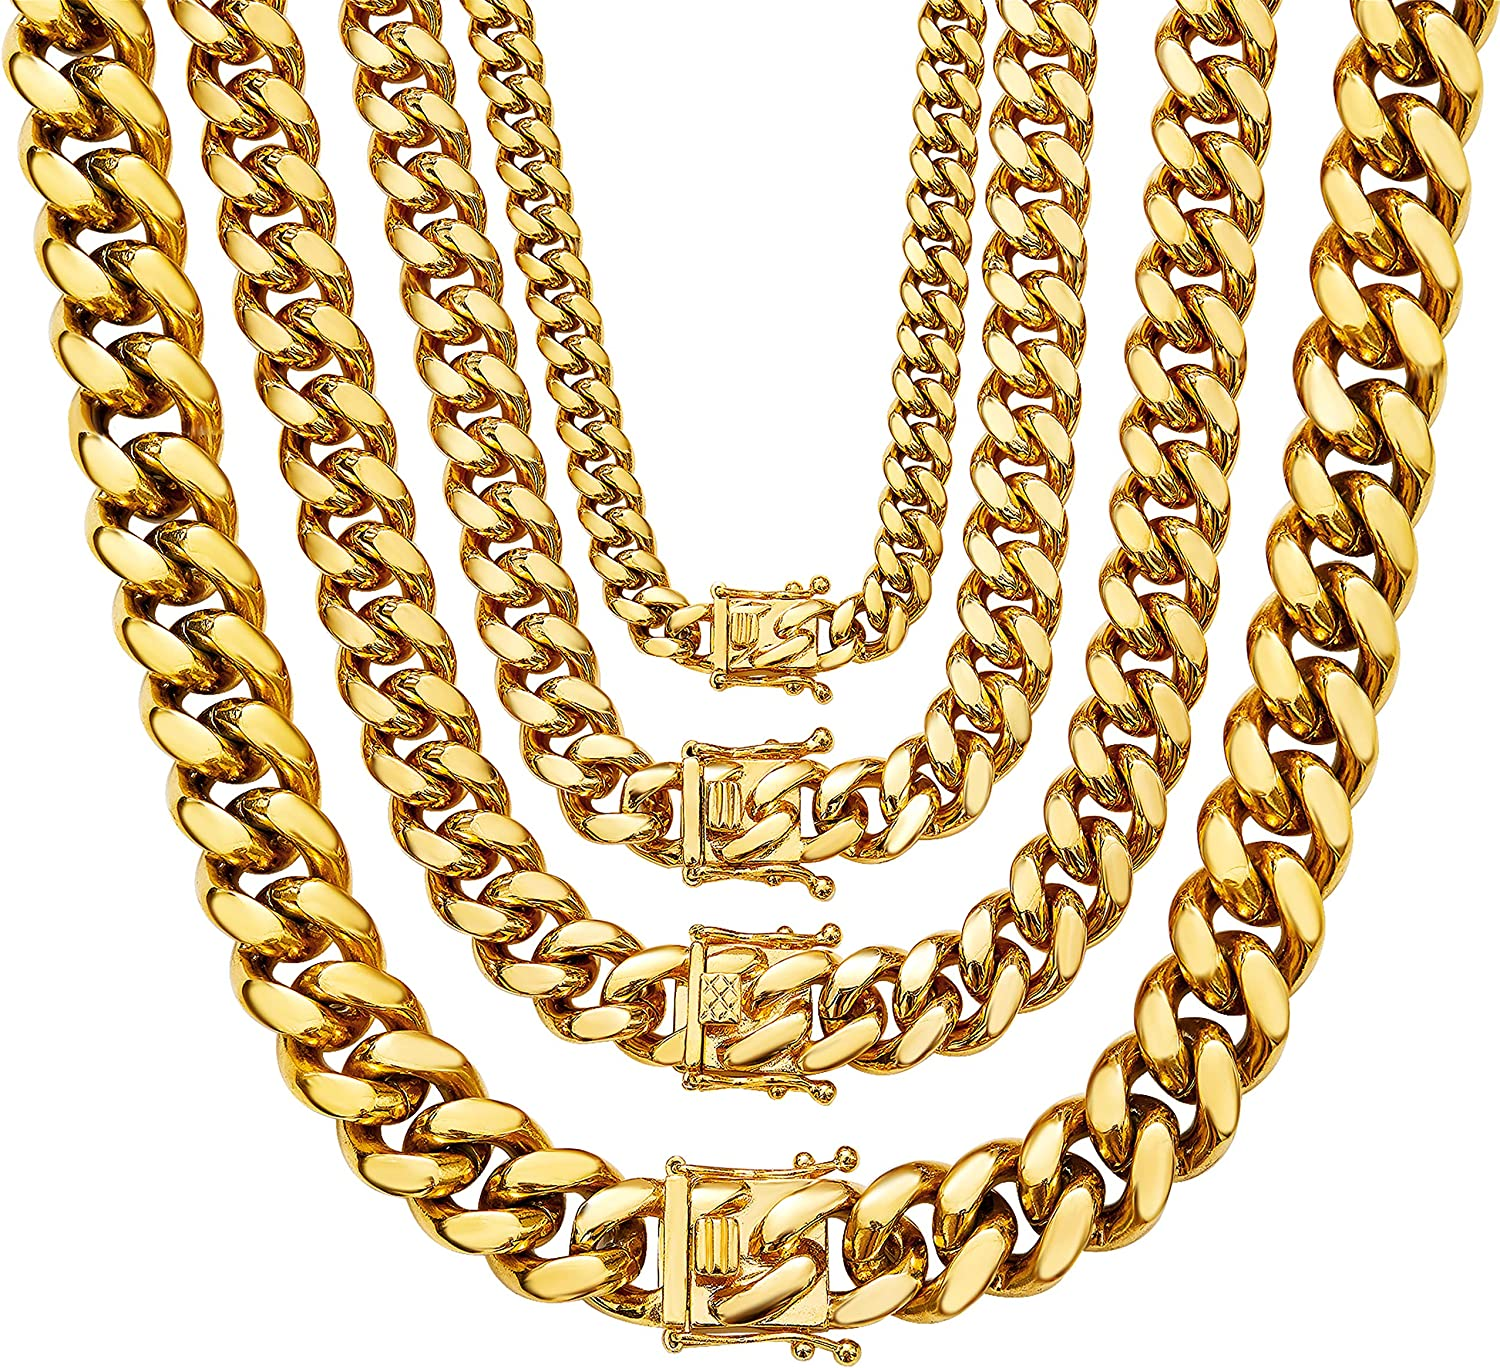 Box Weave Chain Link Necklace Stainless Steel 6mm thick